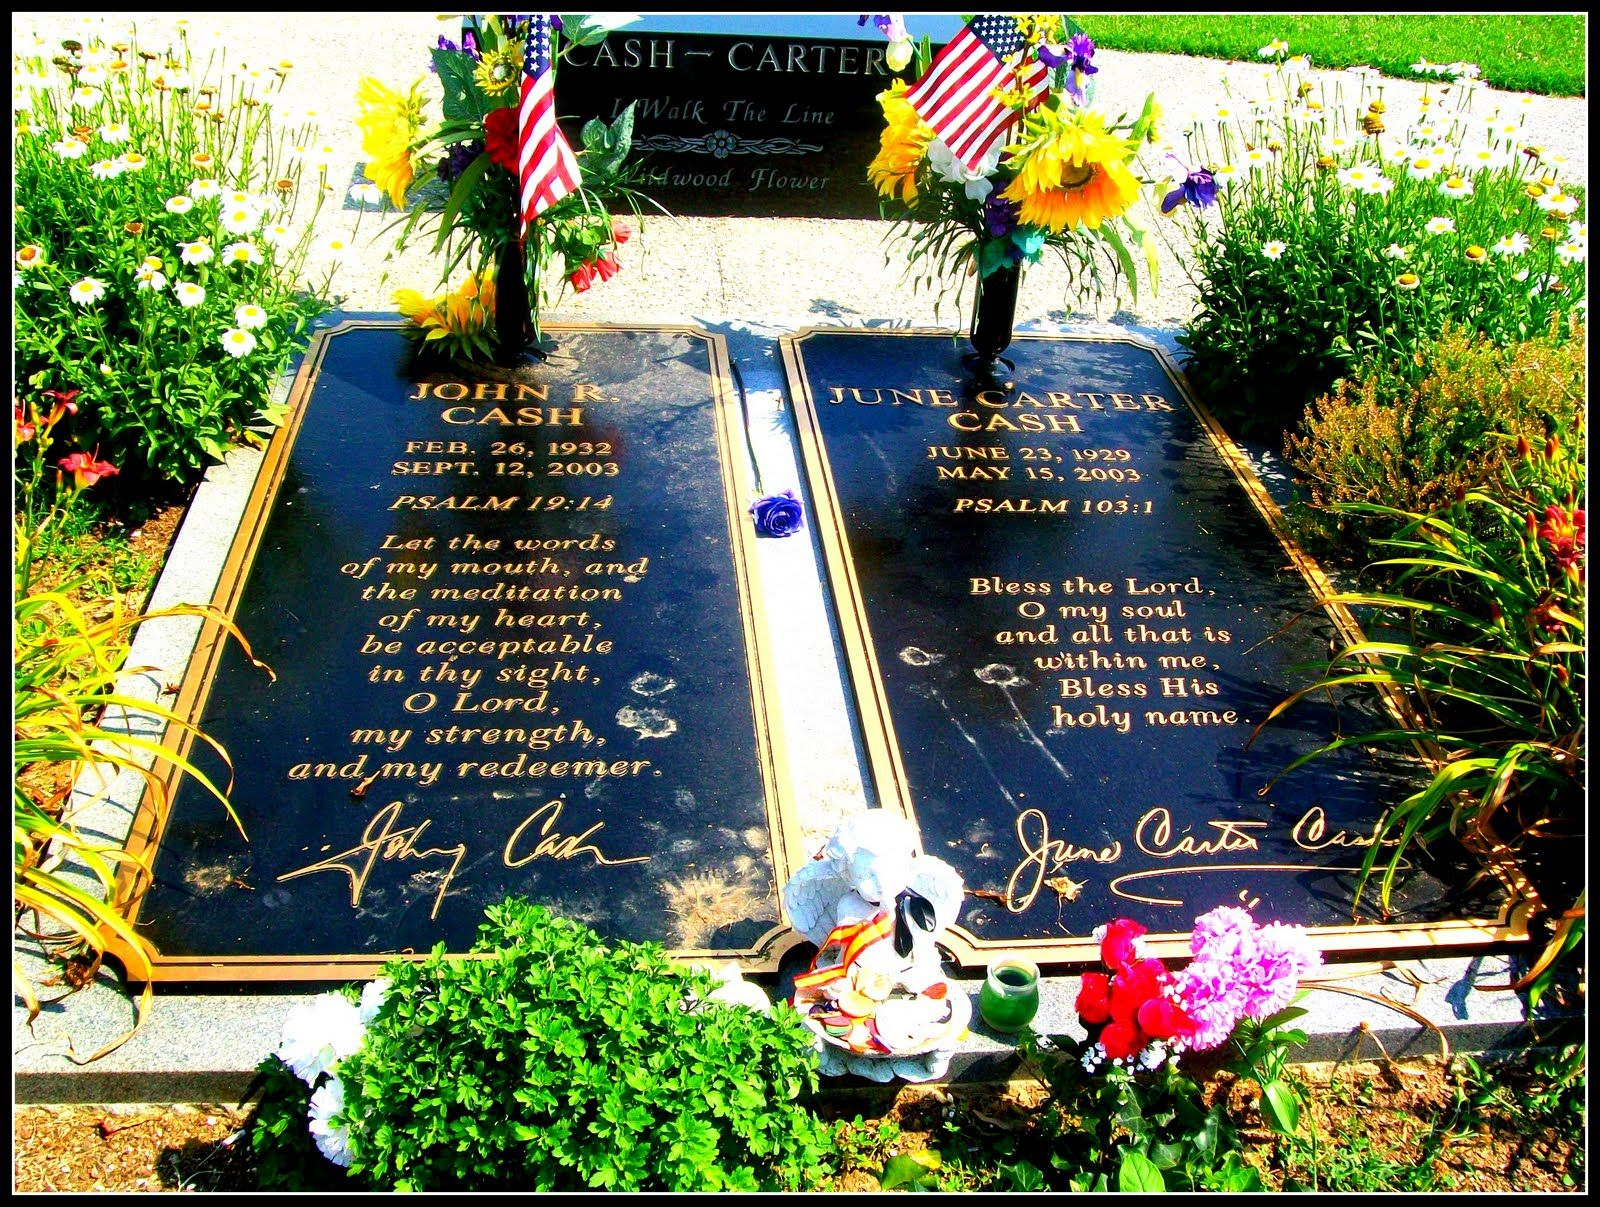 Grave Markers for Johnnie & June Carter Cash